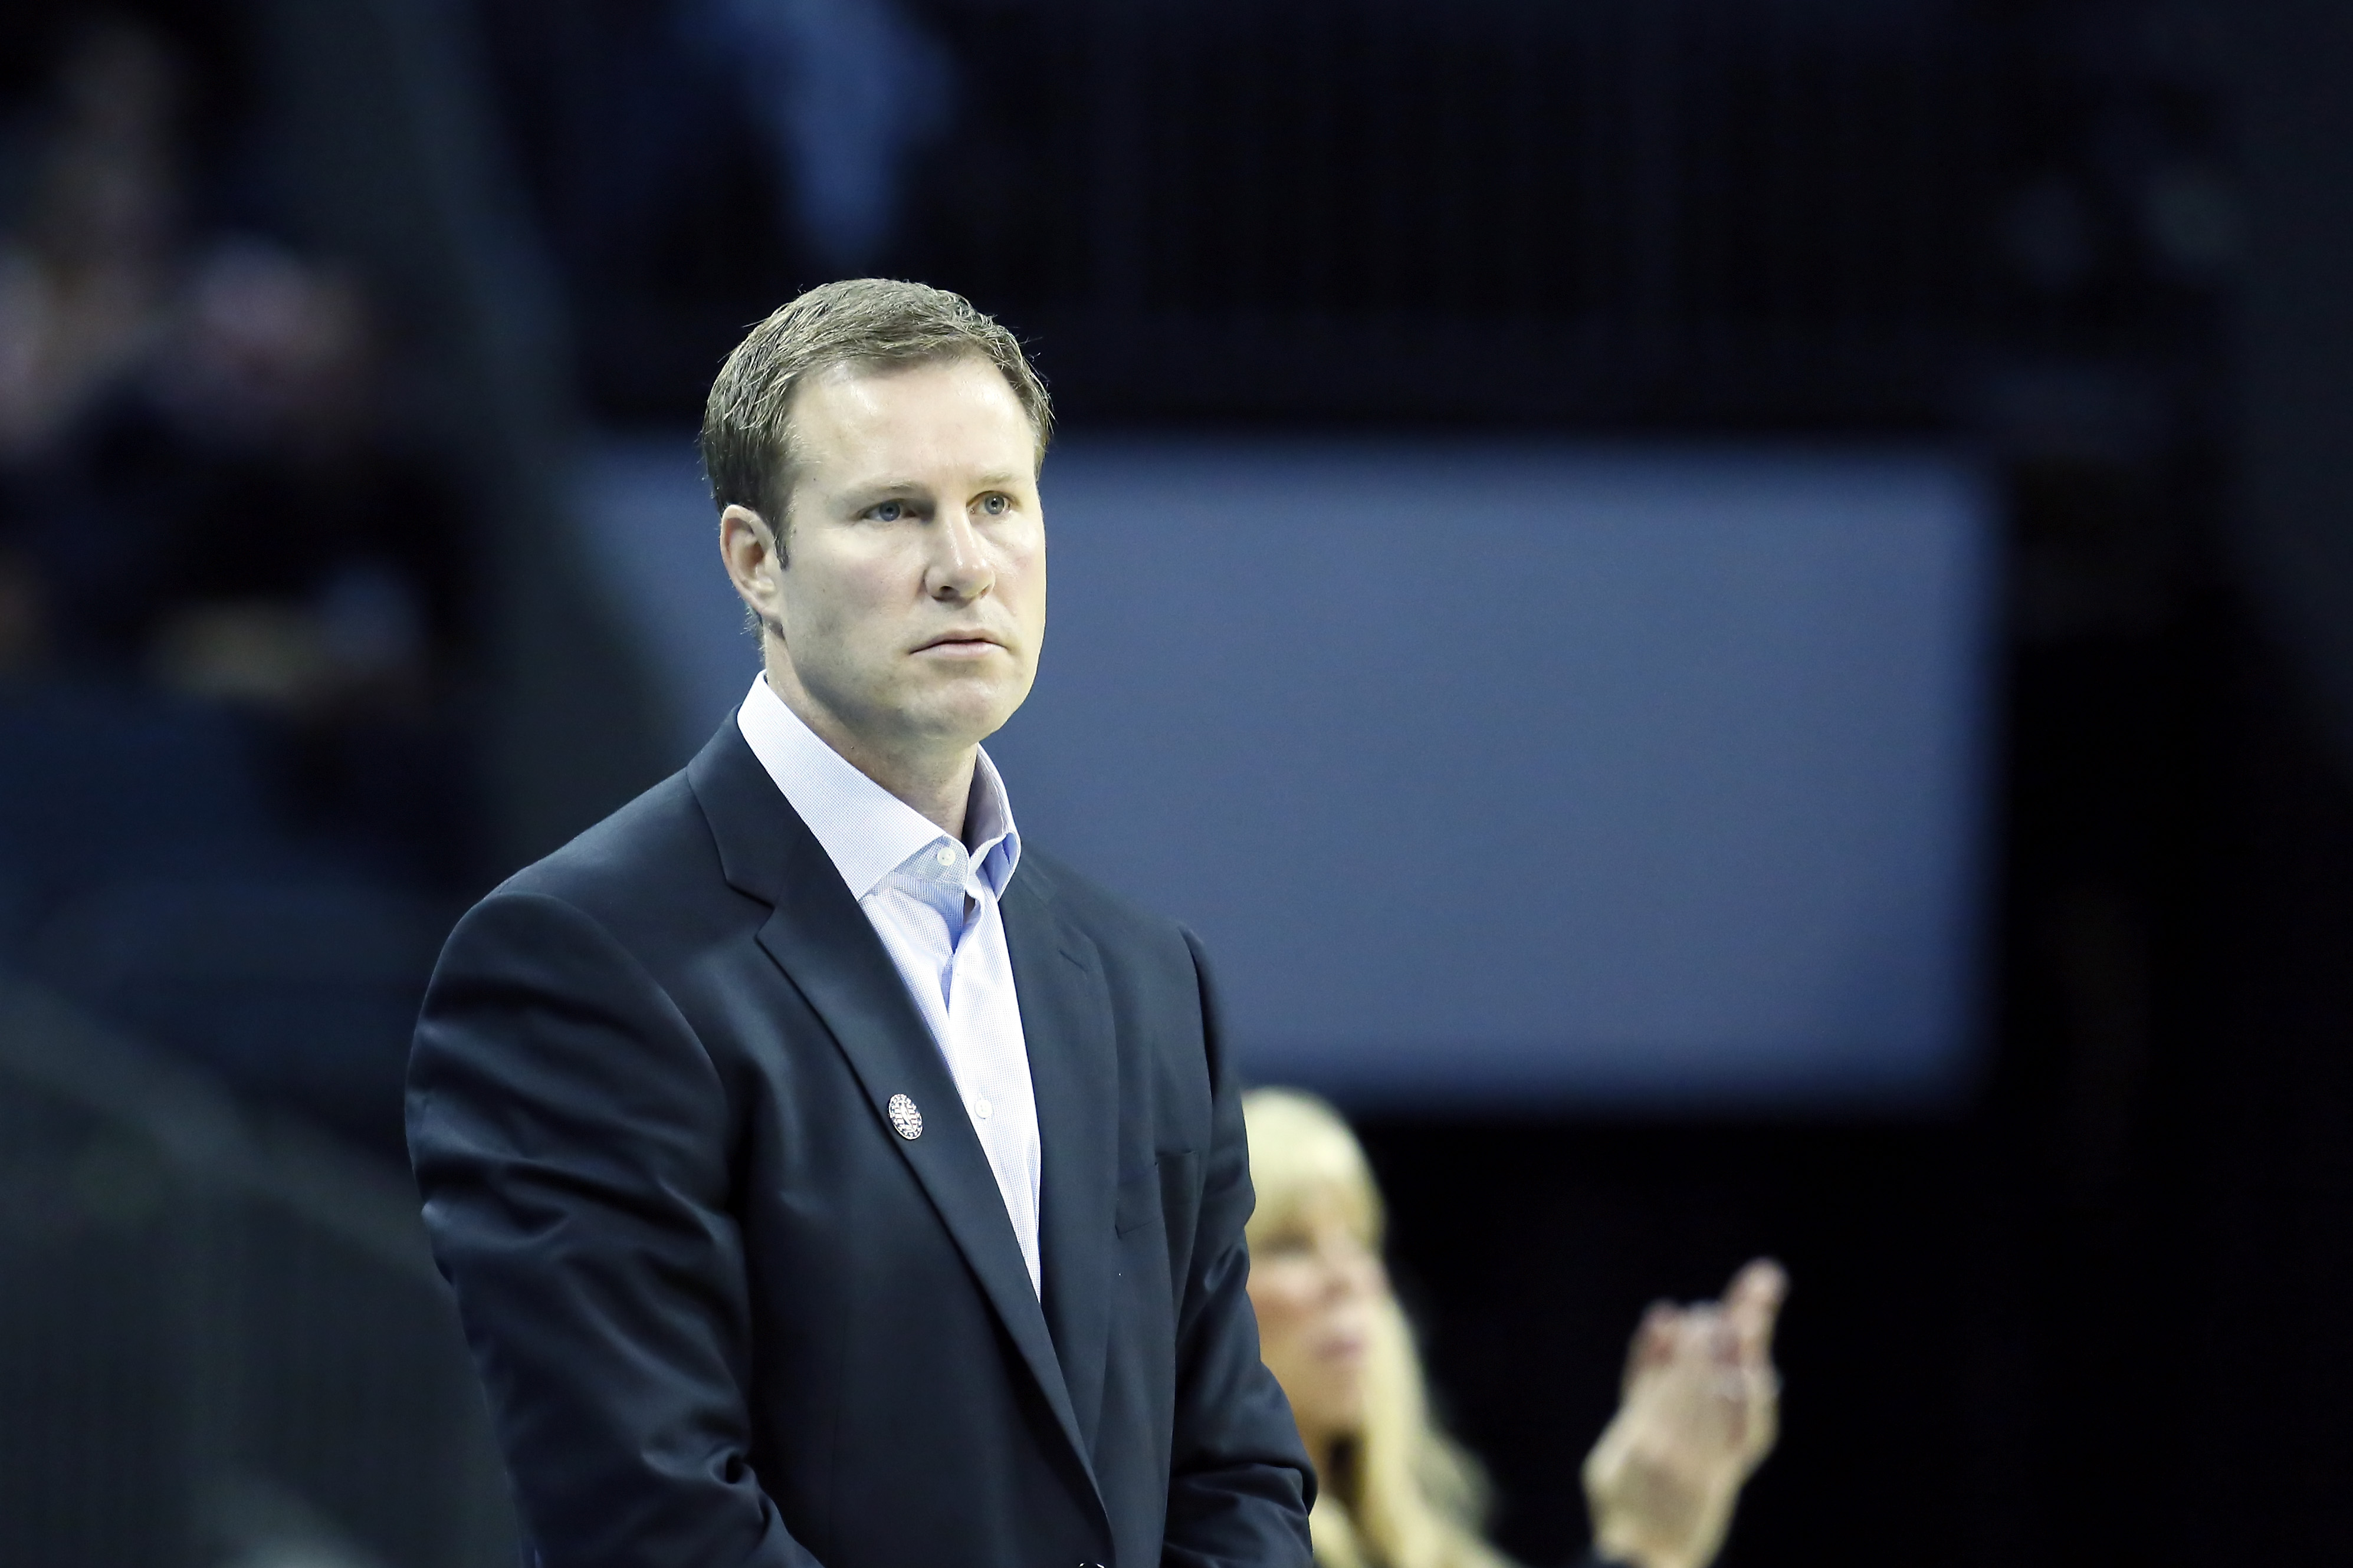 Un journaliste pose une question sur Isaiah Thomas, Fred Hoiberg se barre